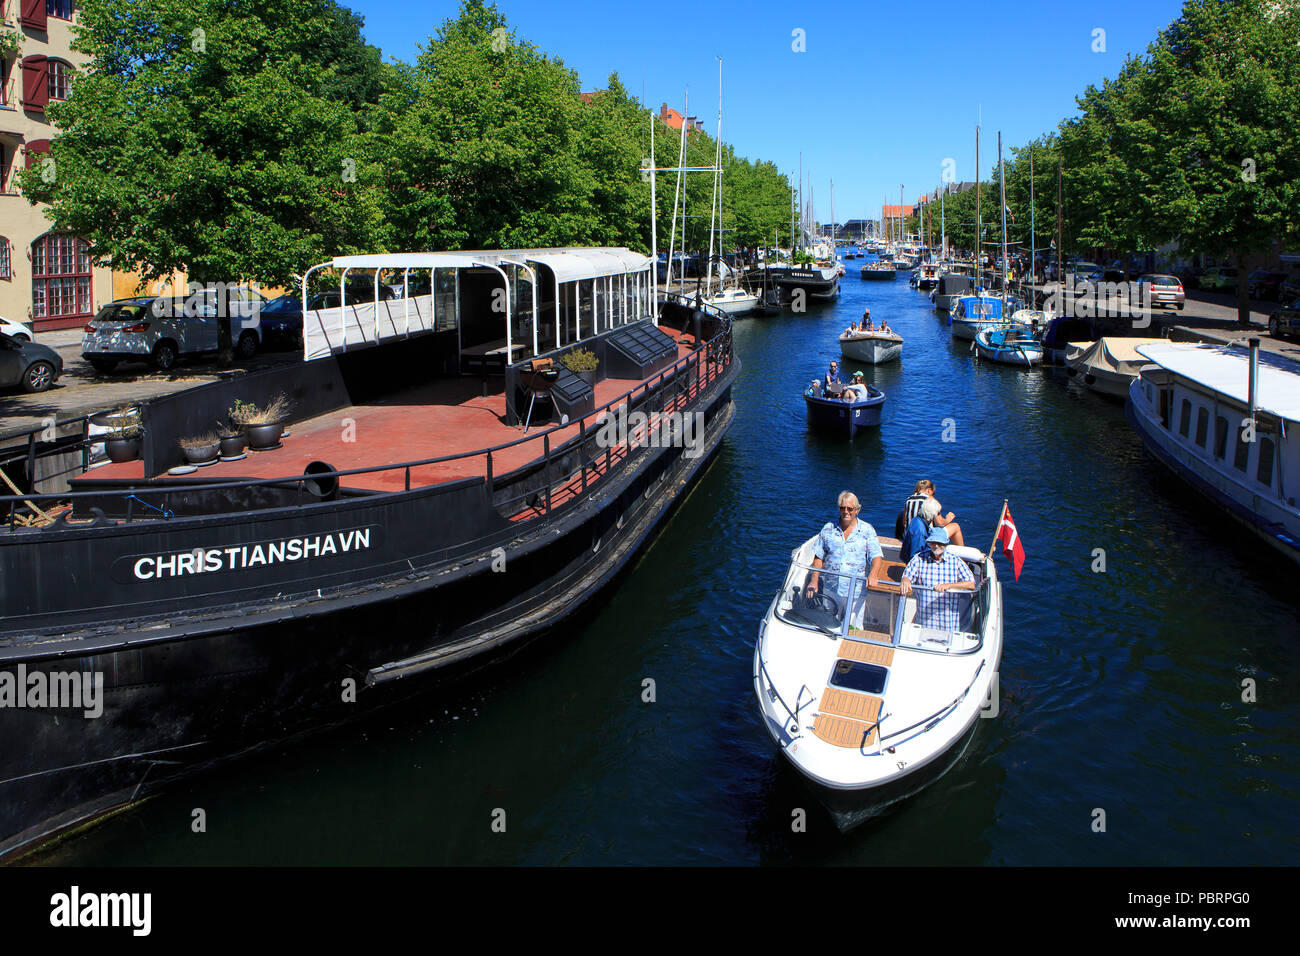 Small boats with tourists cruising along the canals in Christianshavn in Copenhagen, Denmark - Stock Image